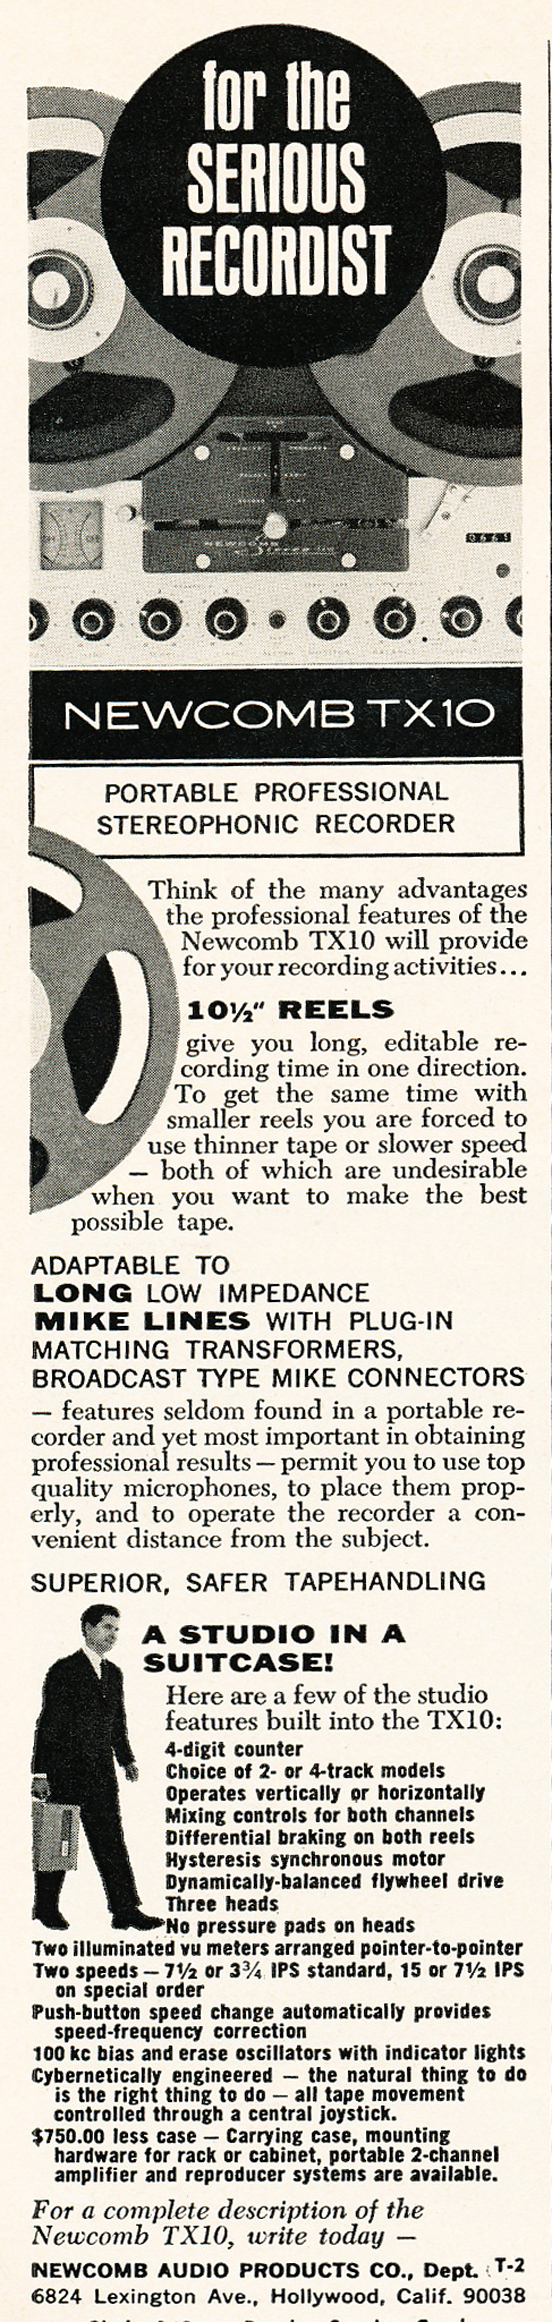 1966 ad for Newcomb reel to reel tape recorders  in Reel2ReelTexas.com's vintage recording collection